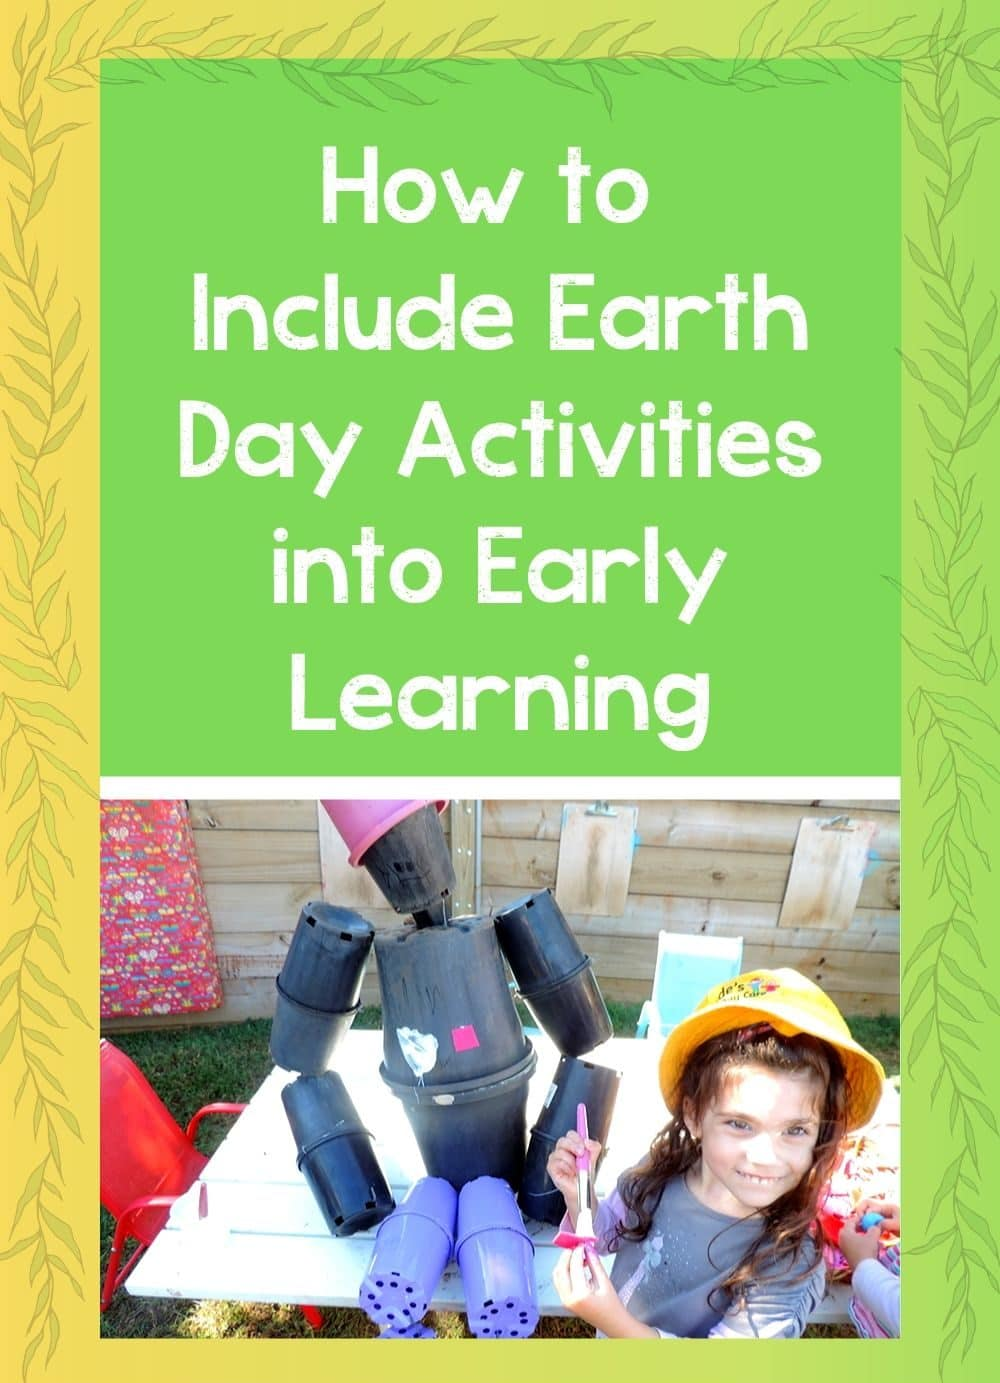 How to Include Earth Day Activities into Early Learning